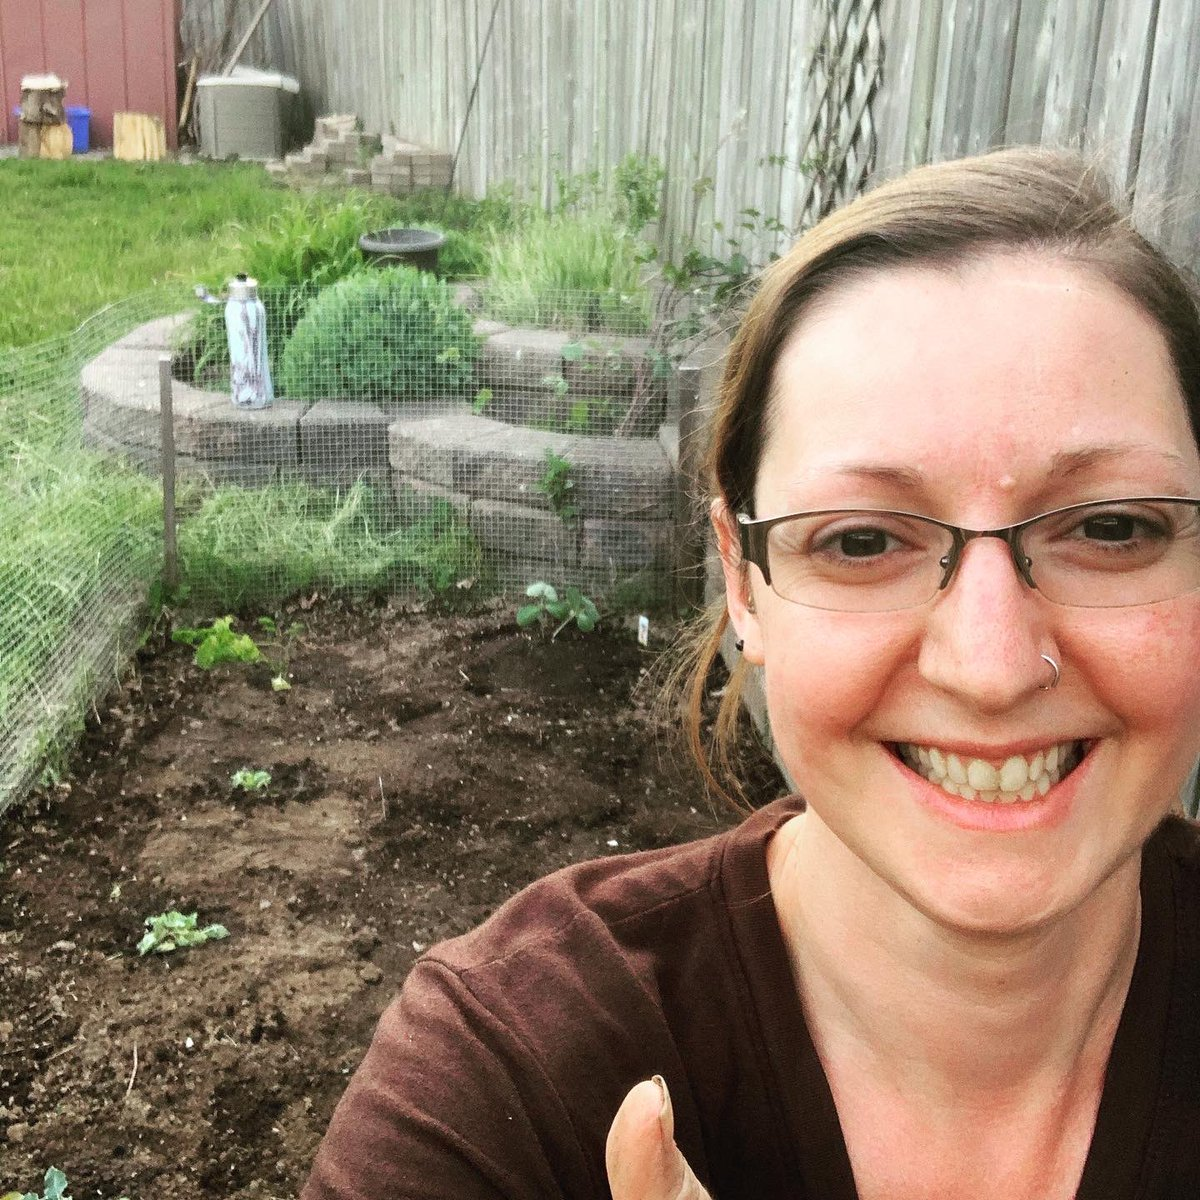 Loving the #sunshine and #warm weather! Got my first #vegetable plants in the ground.pic.twitter.com/wDW8BsuUq5